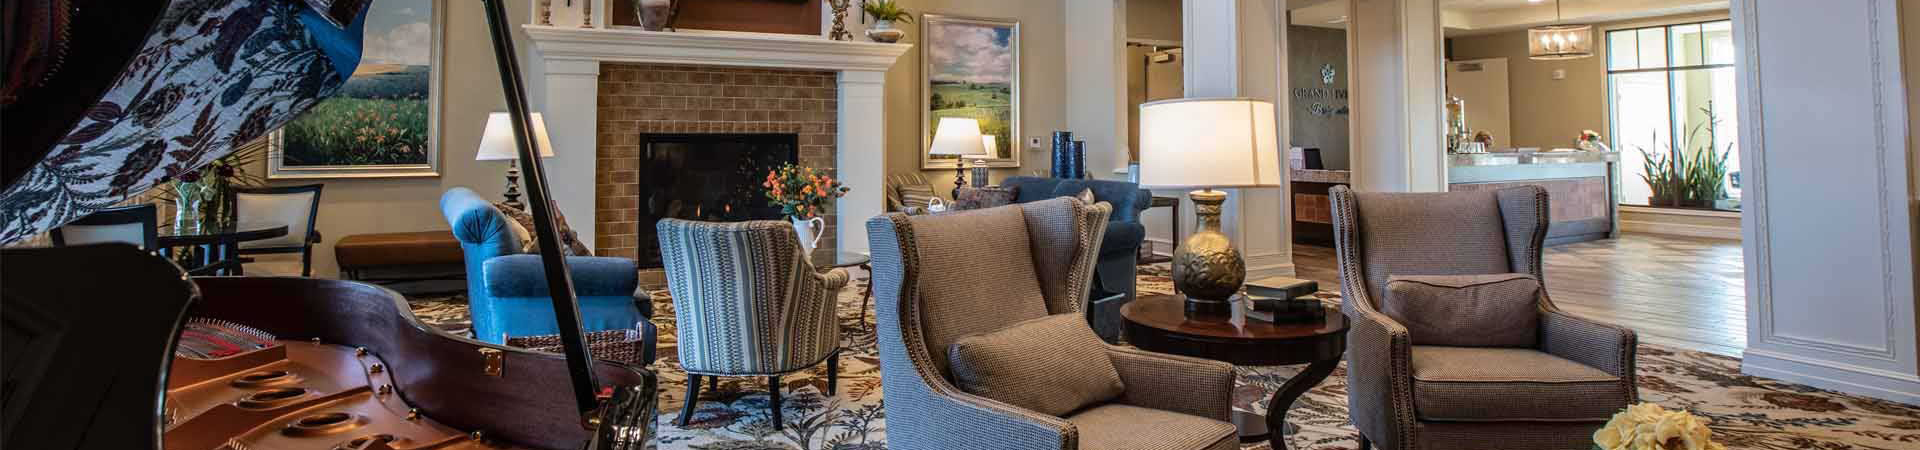 Grand Living at Bridgewater Fireplace in Lobby Coralville, IA